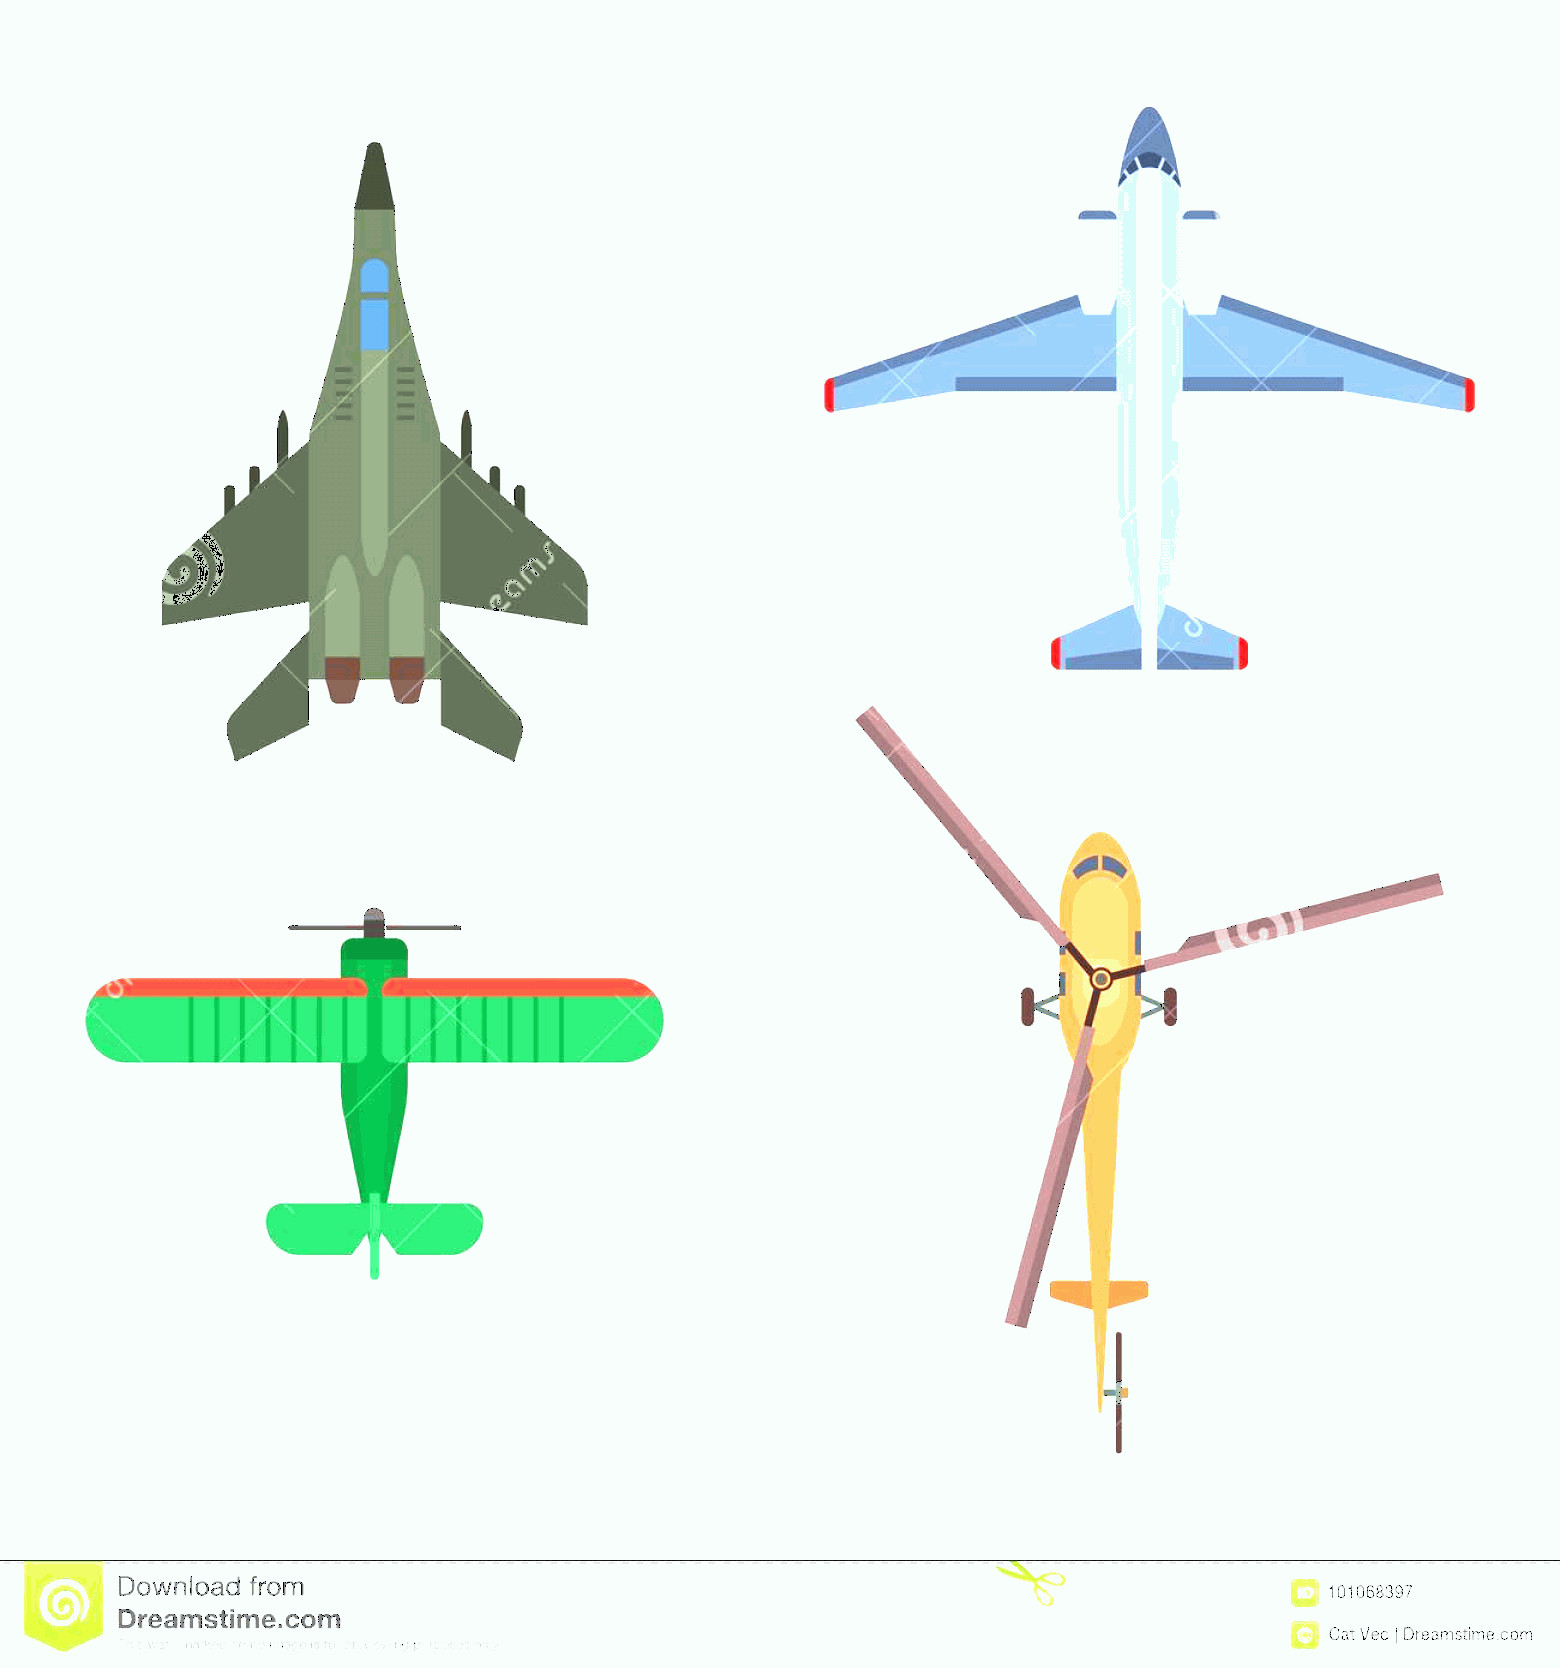 Aviation Vector Designs: Vector Airplane Illustration Top View Aircraft Transportation Travel Way Design Journey Object Plane Passenger Trip To Image